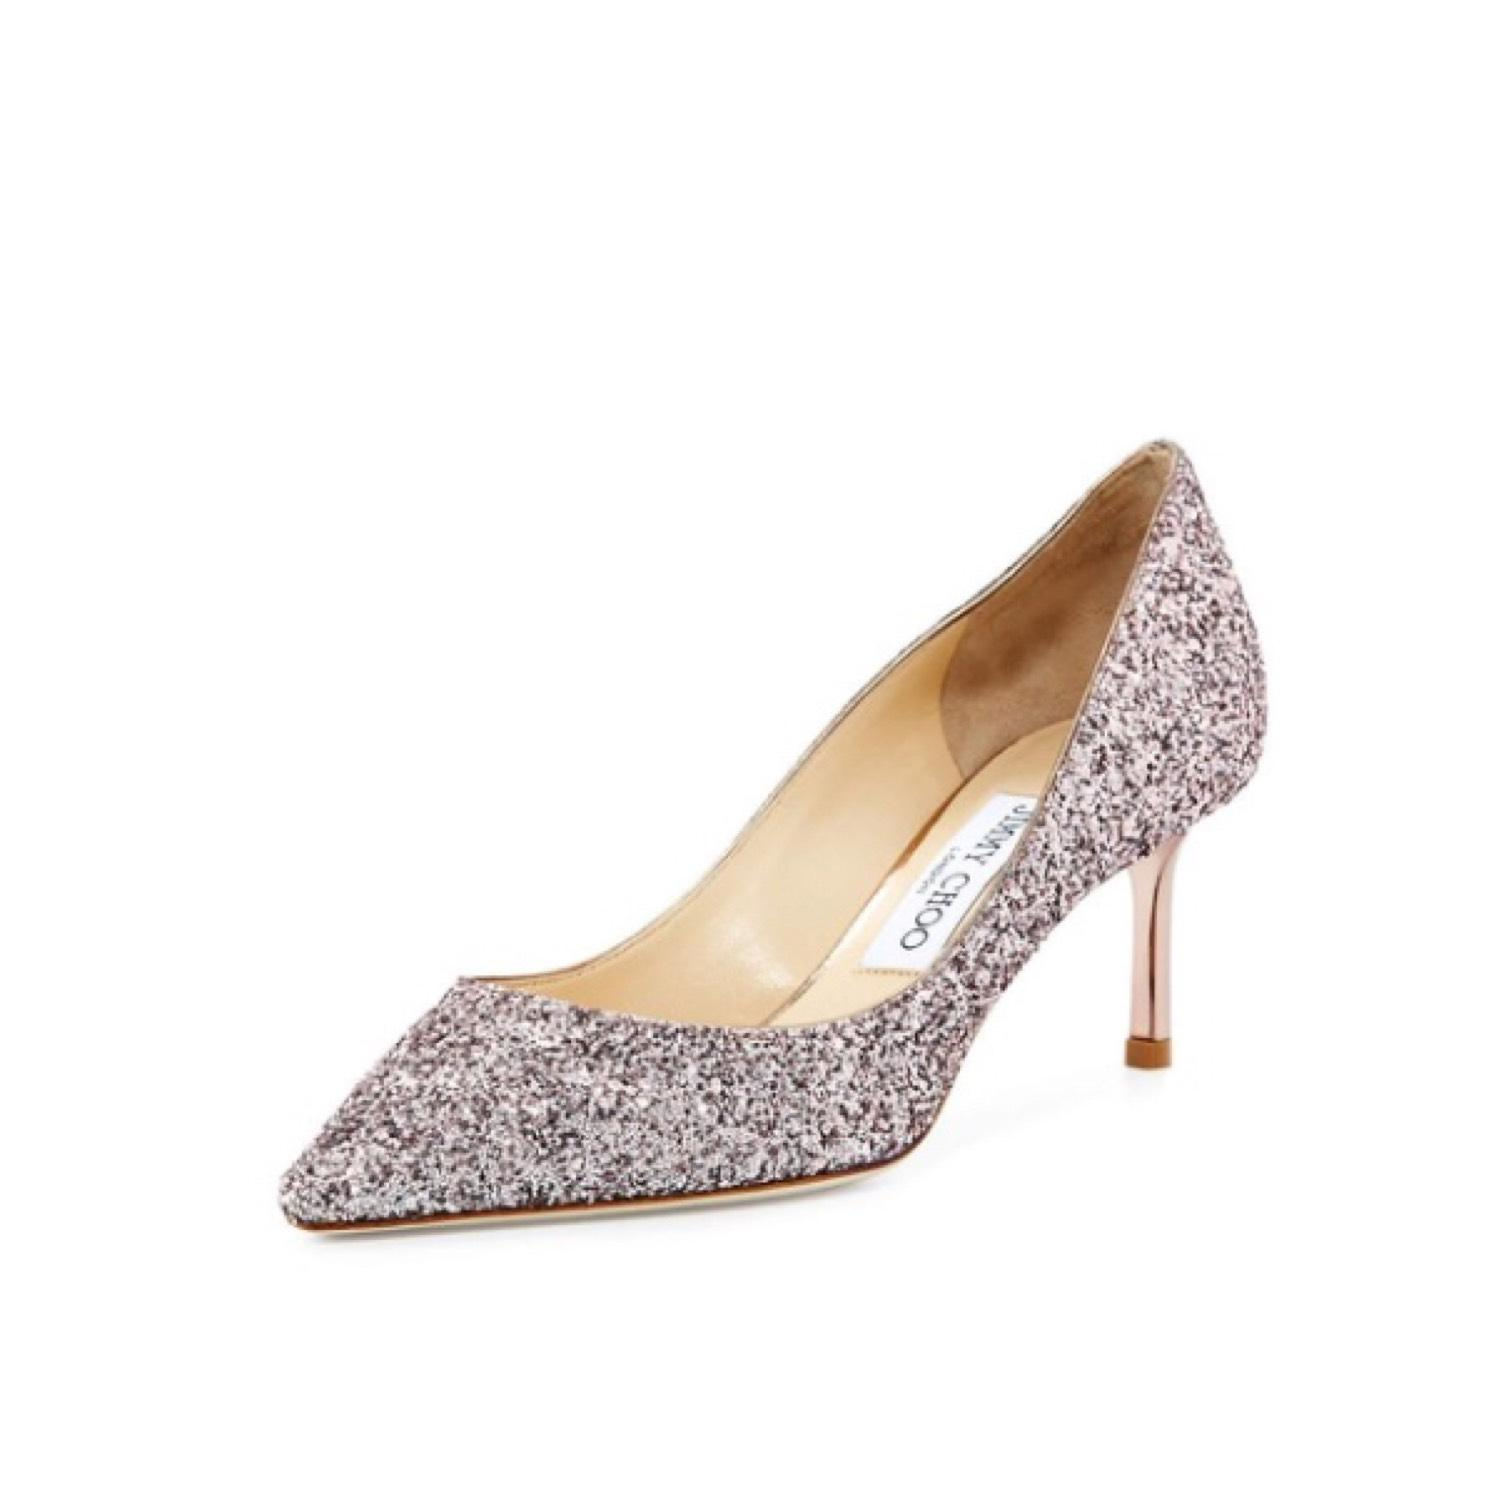 jimmy choo outlet - HD 1500×1500